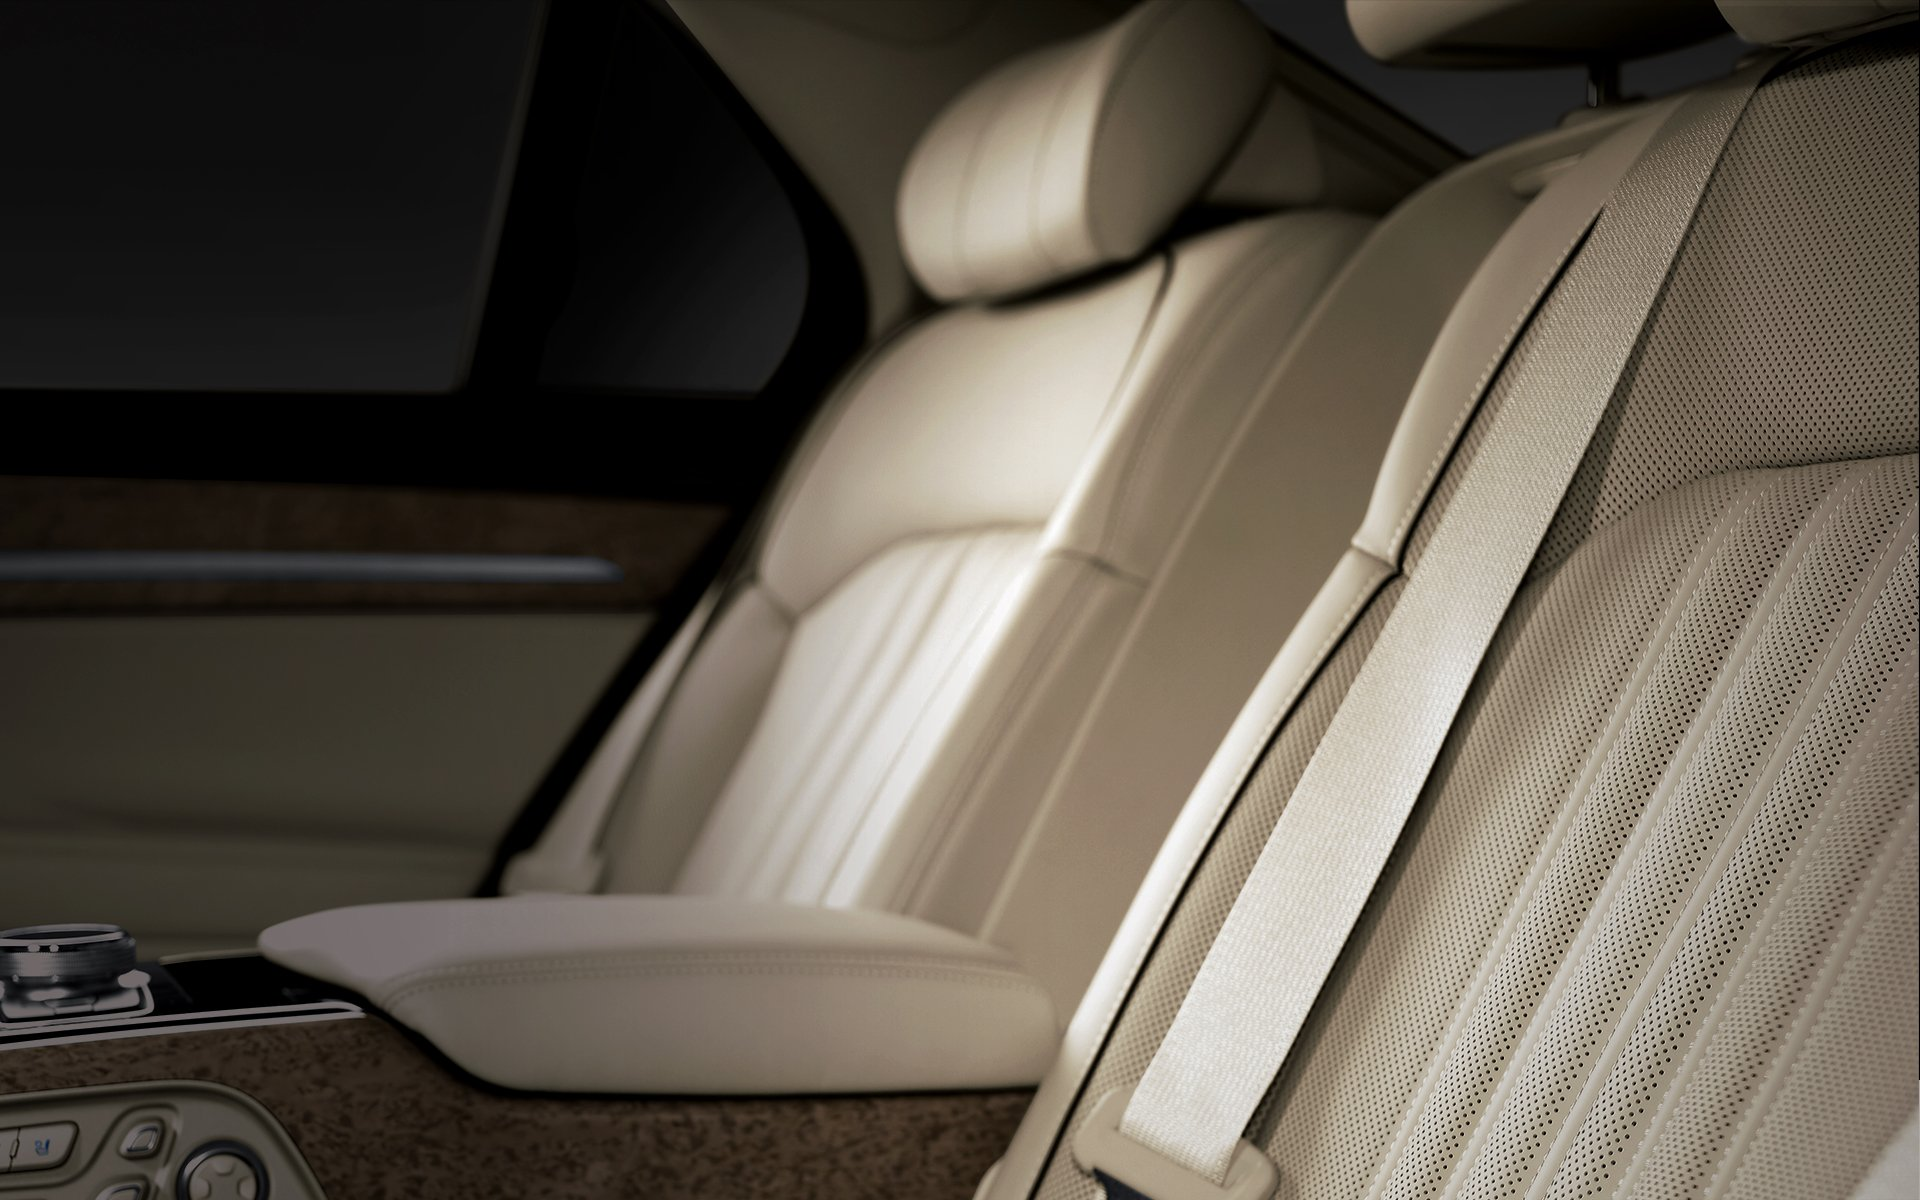 GENESIS EQ900 Design Features - Prime Nappa leather seats